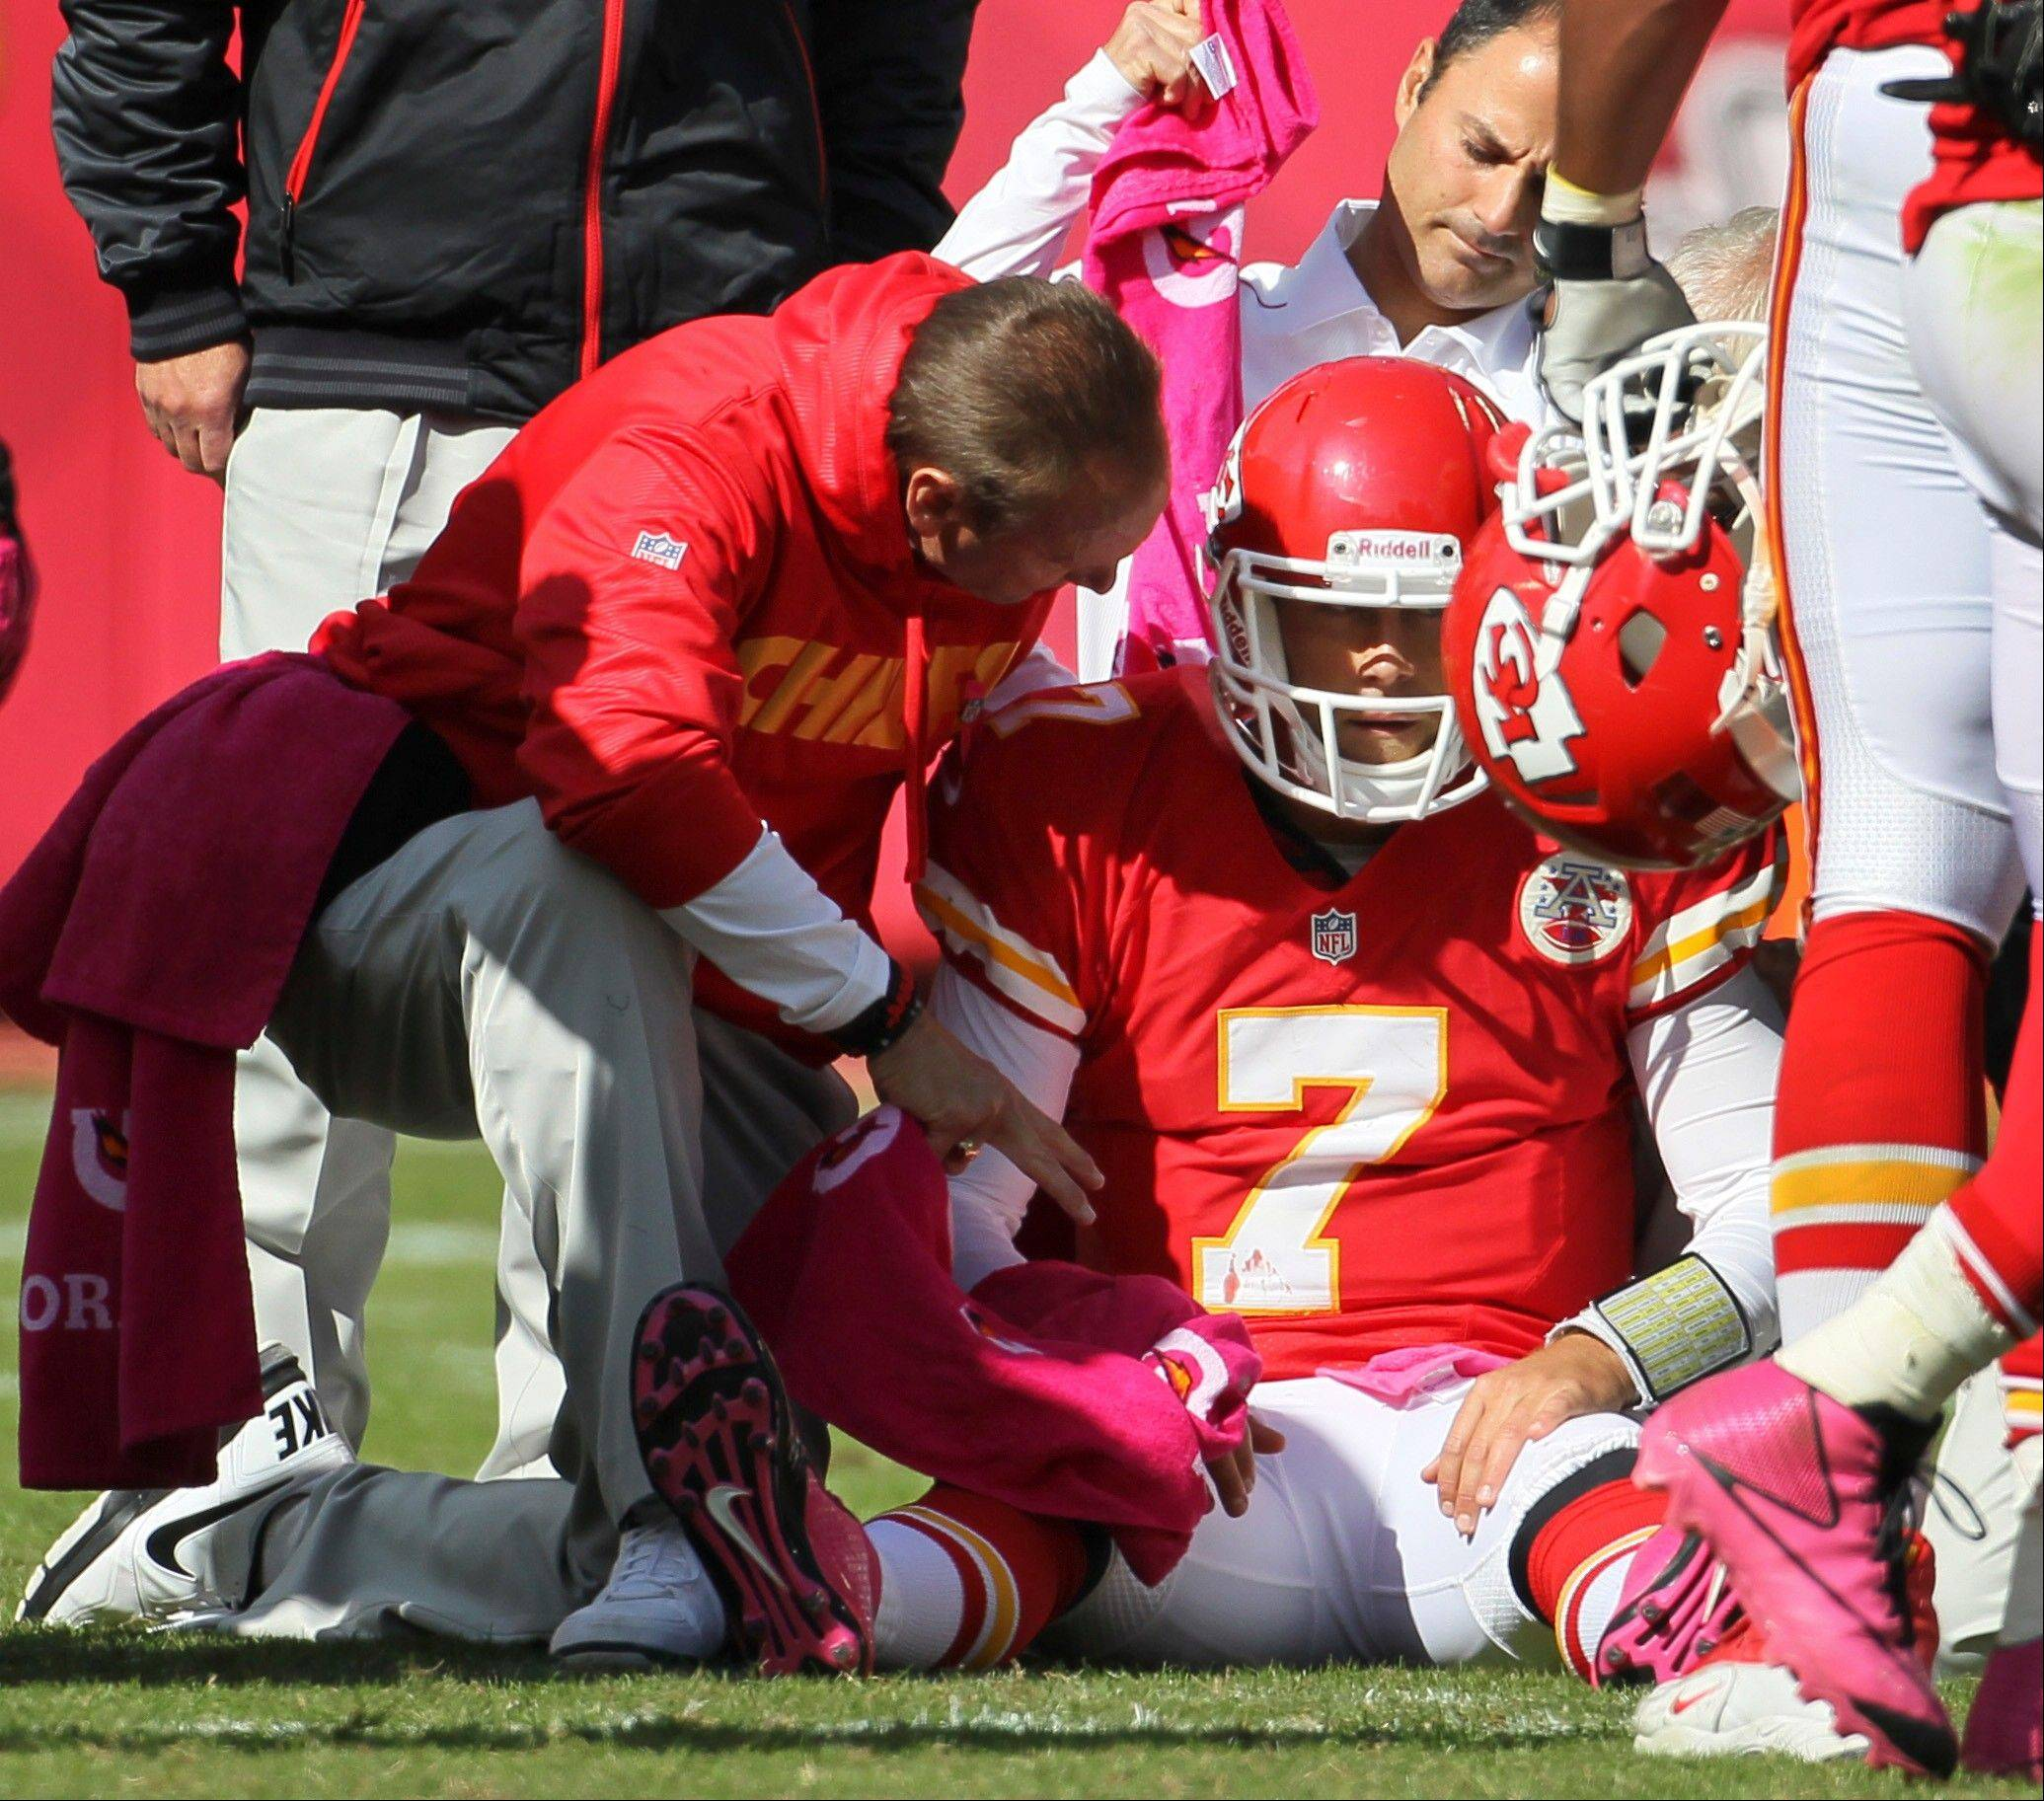 Trainers assist Chiefs quarterback Matt Cassel during the second half Sunday against the Baltimore Ravens at Arrowhead Stadium in Kansas City, Mo. The Ravens defeated the Chiefs 9-6.